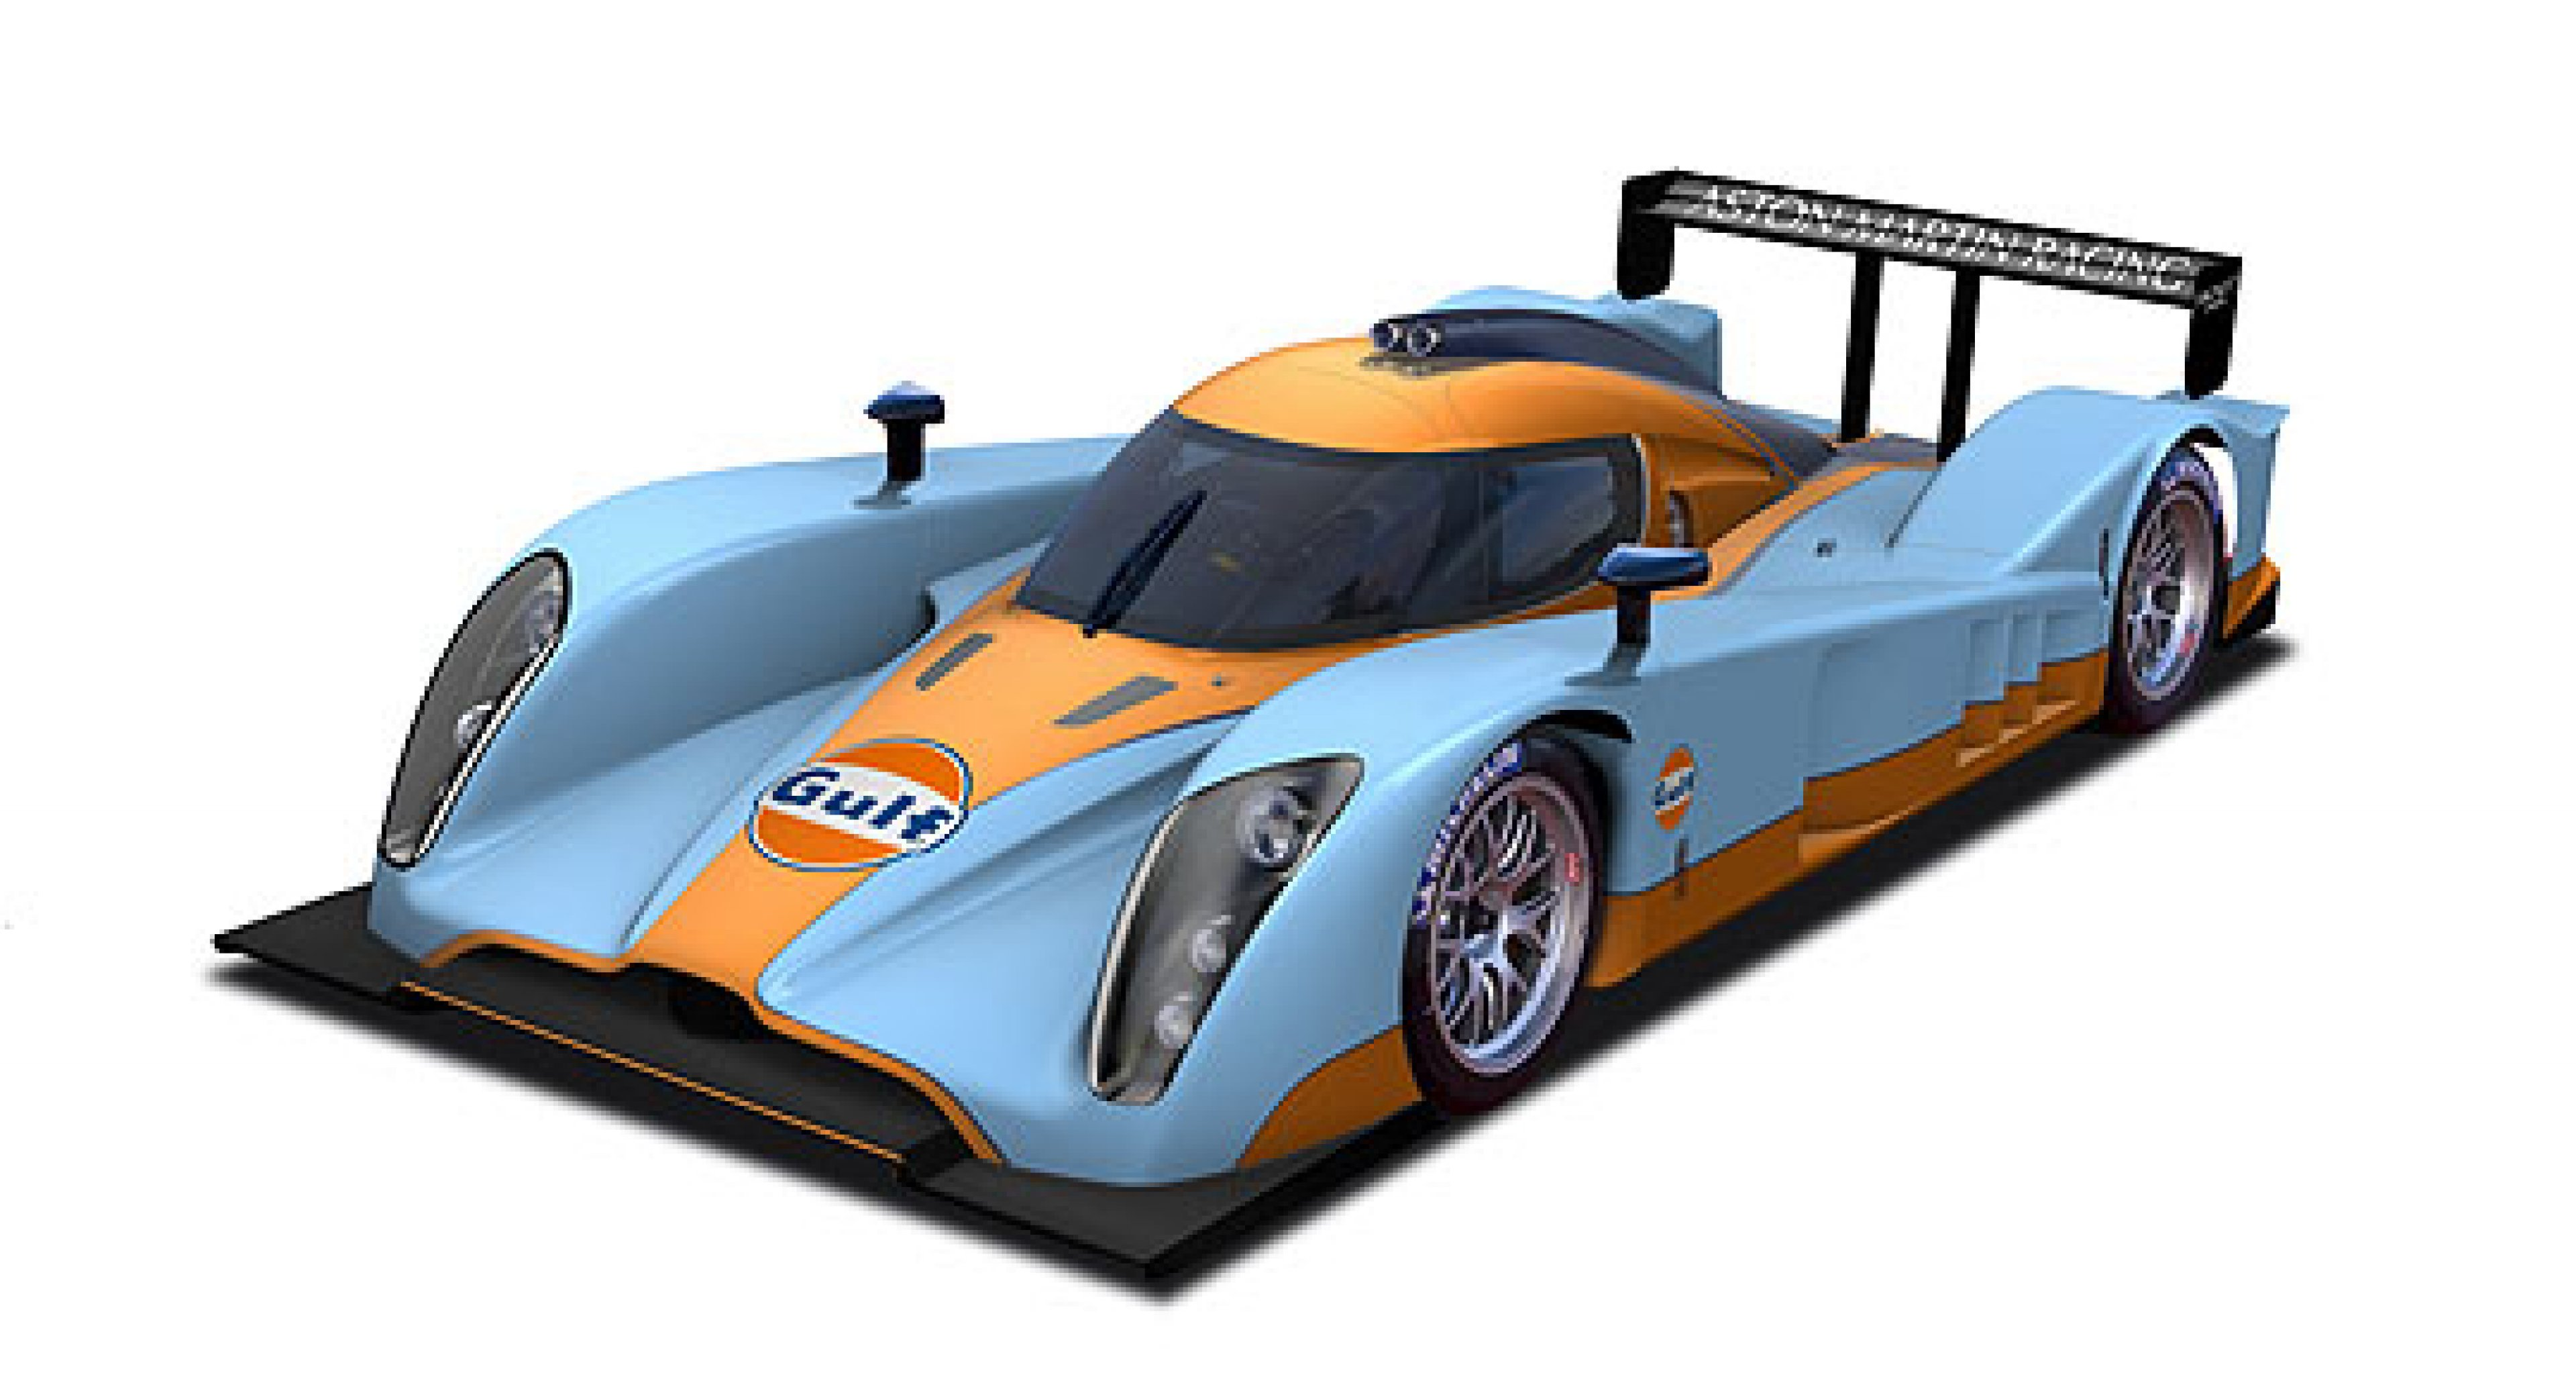 Aston Martin to Race Gulf-liveried Prototype at 2009 Le Mans